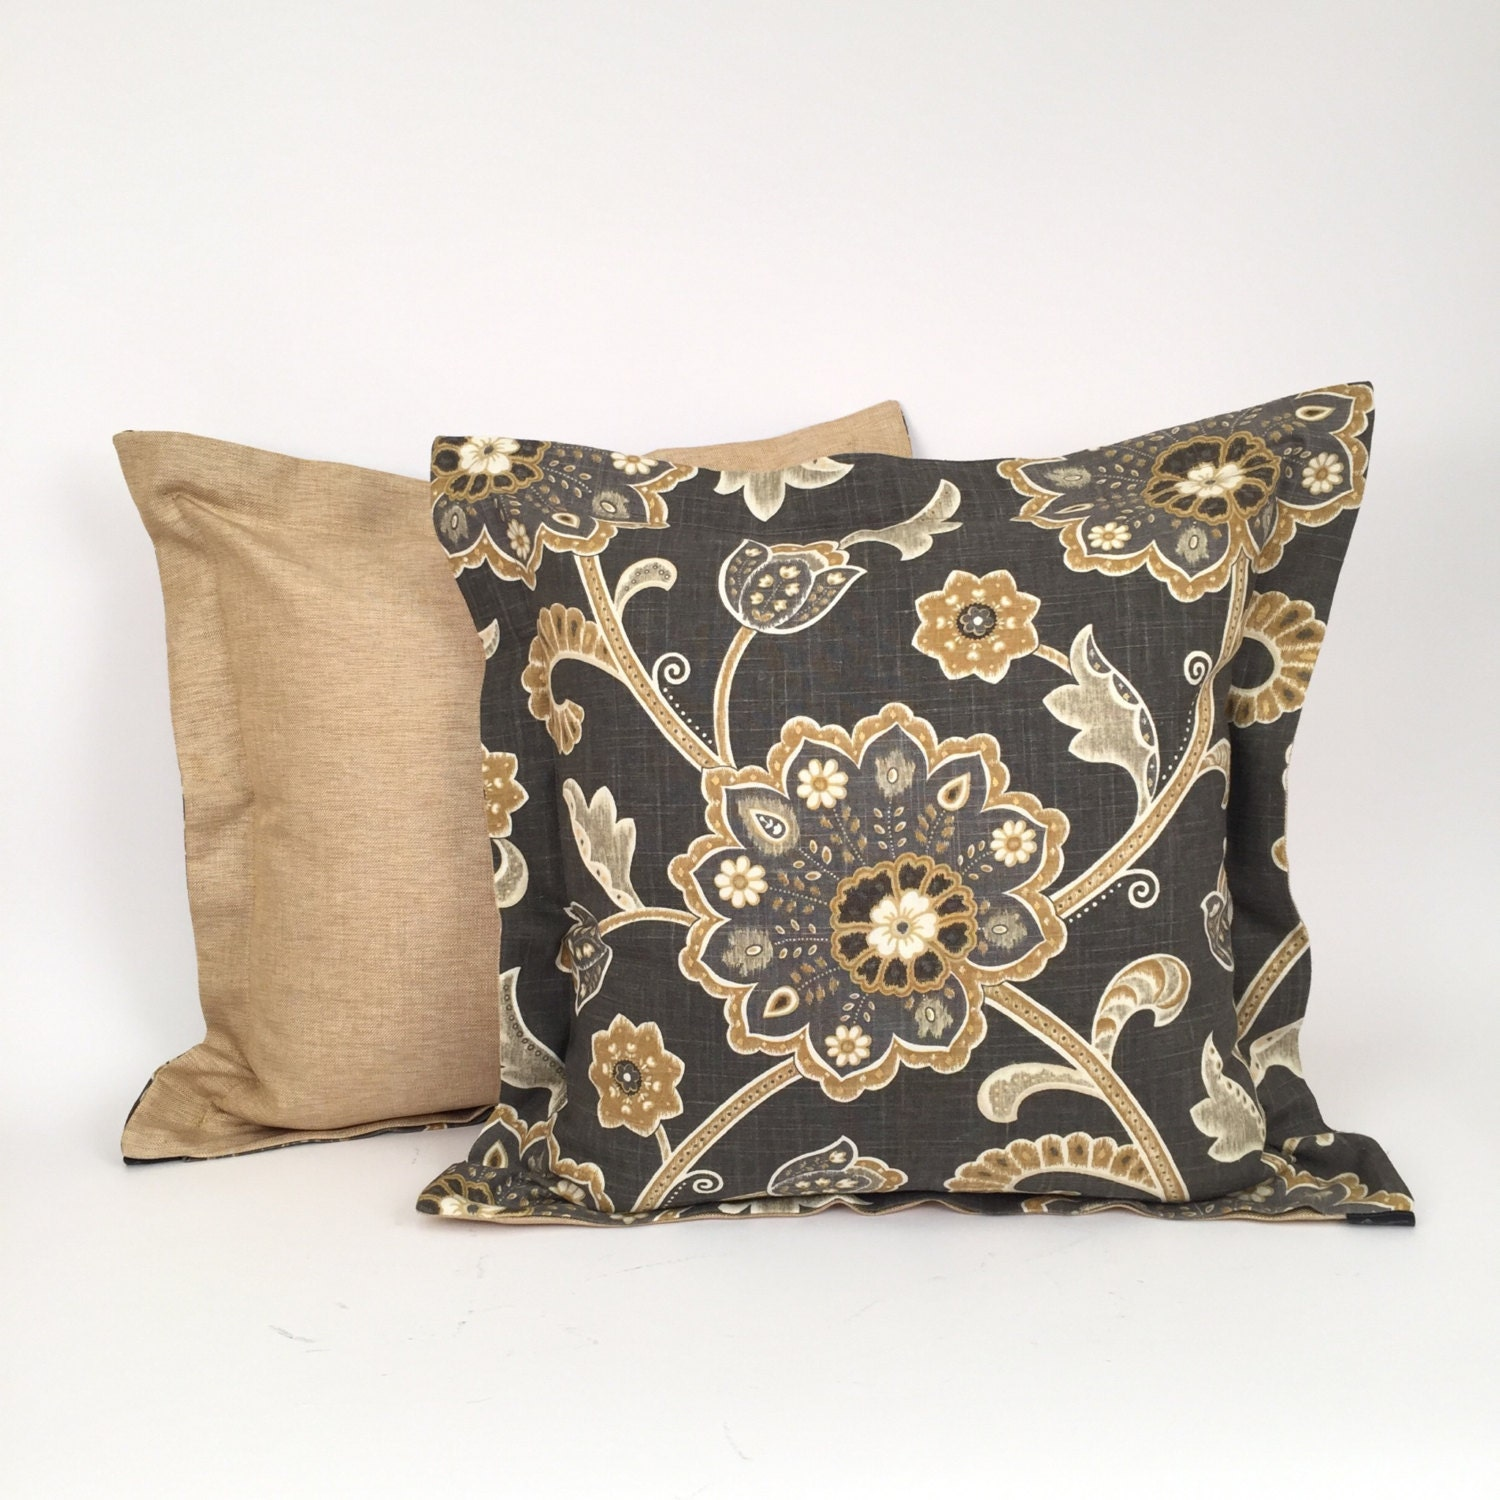 Designer luxury throw pillow taupe and gold floral design for Luxury decorative throw pillows